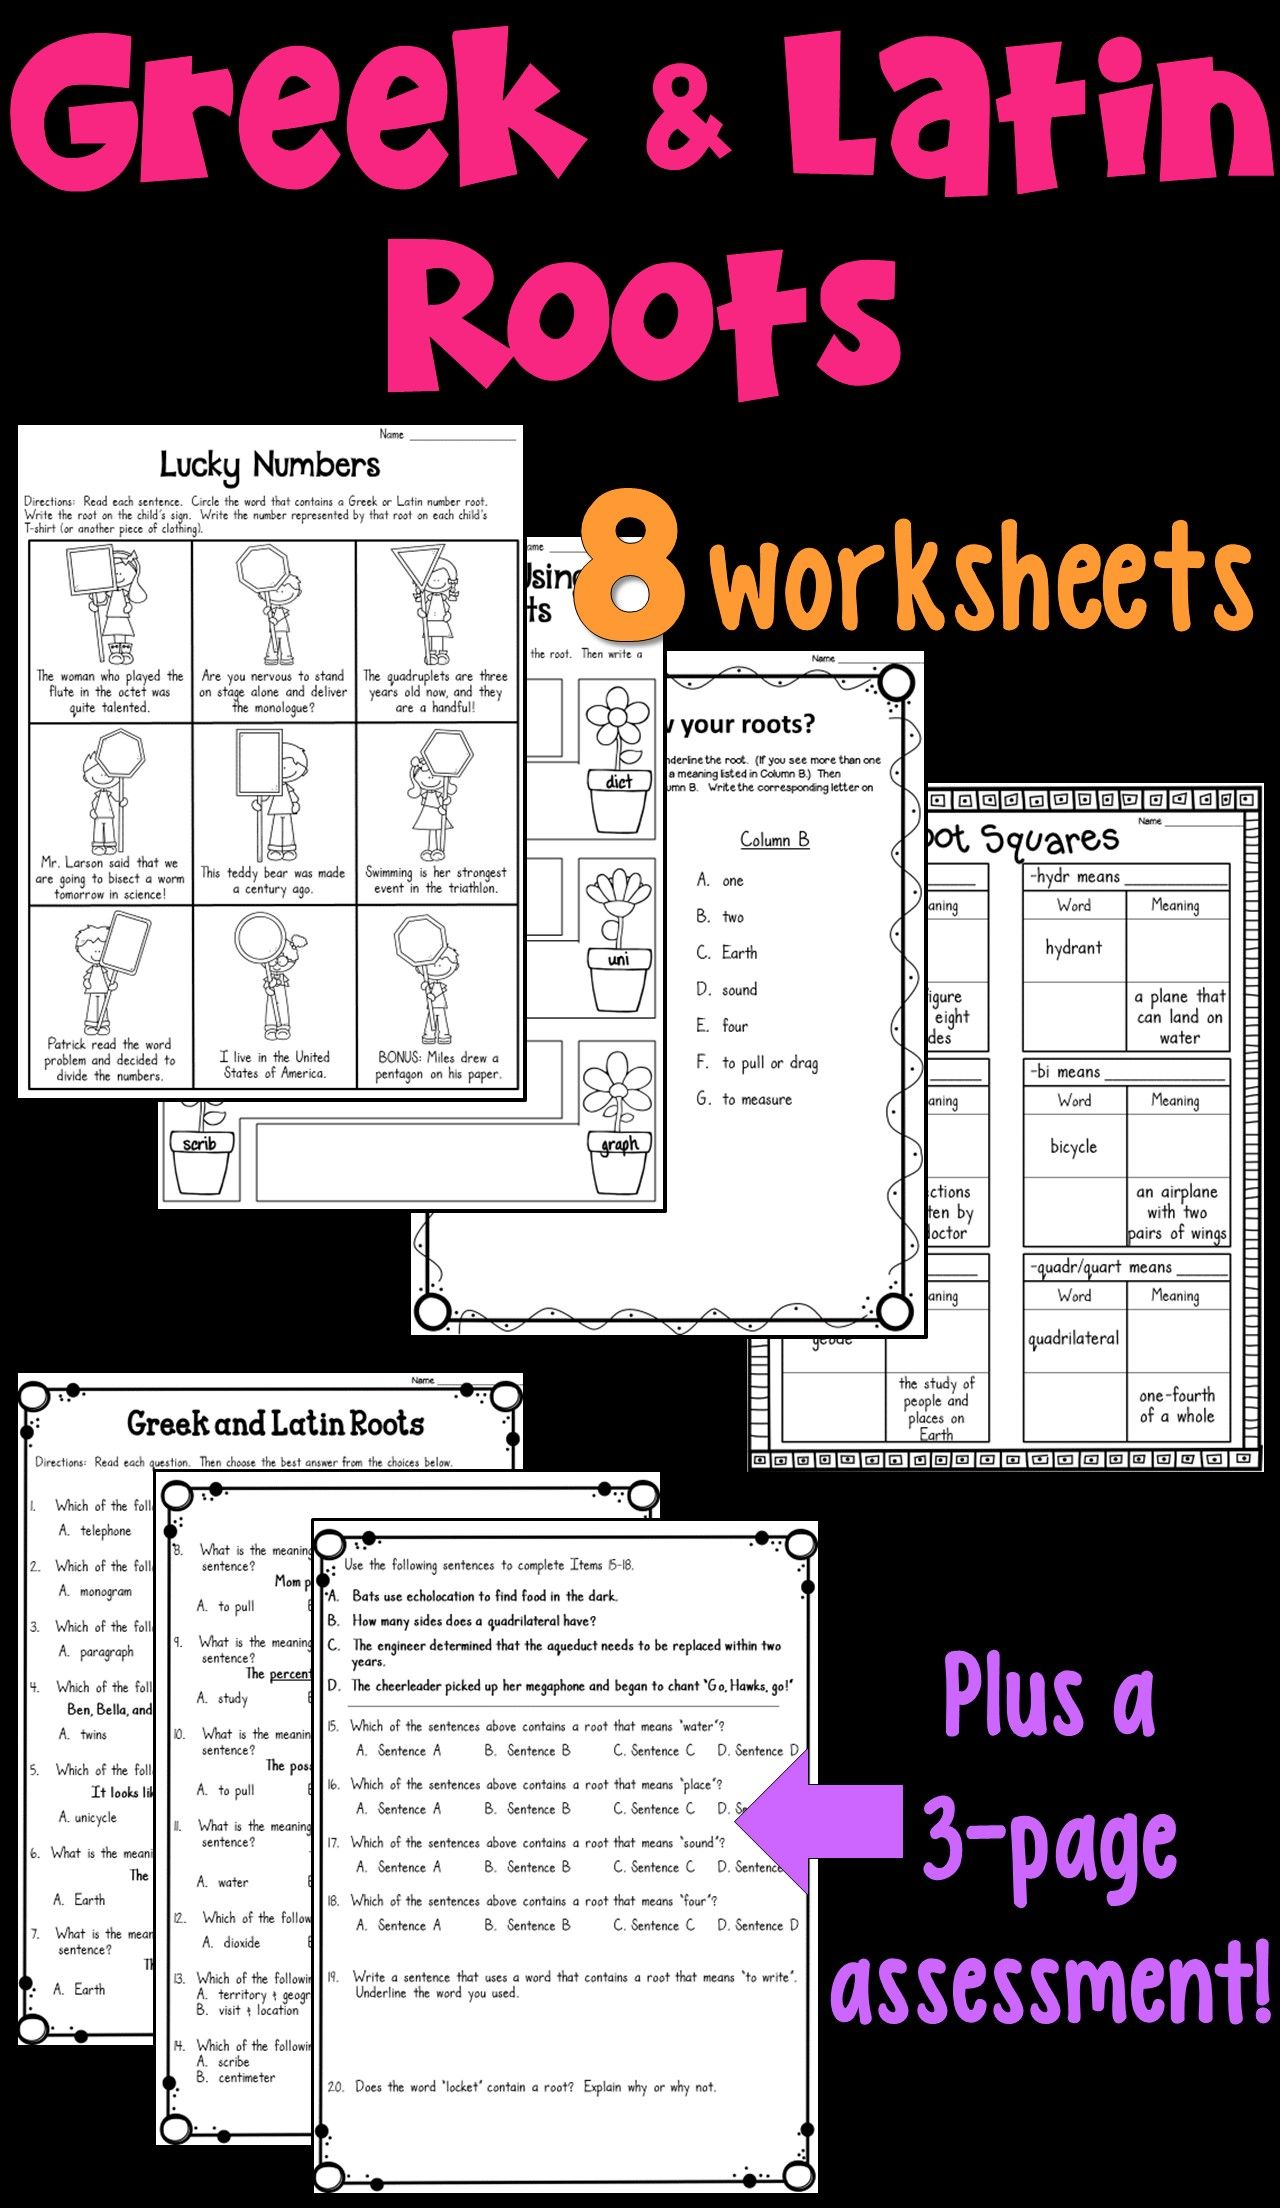 Worksheets Greek And Latin Roots Worksheet Cheatslist Free Worksheets For Kids Amp Printable